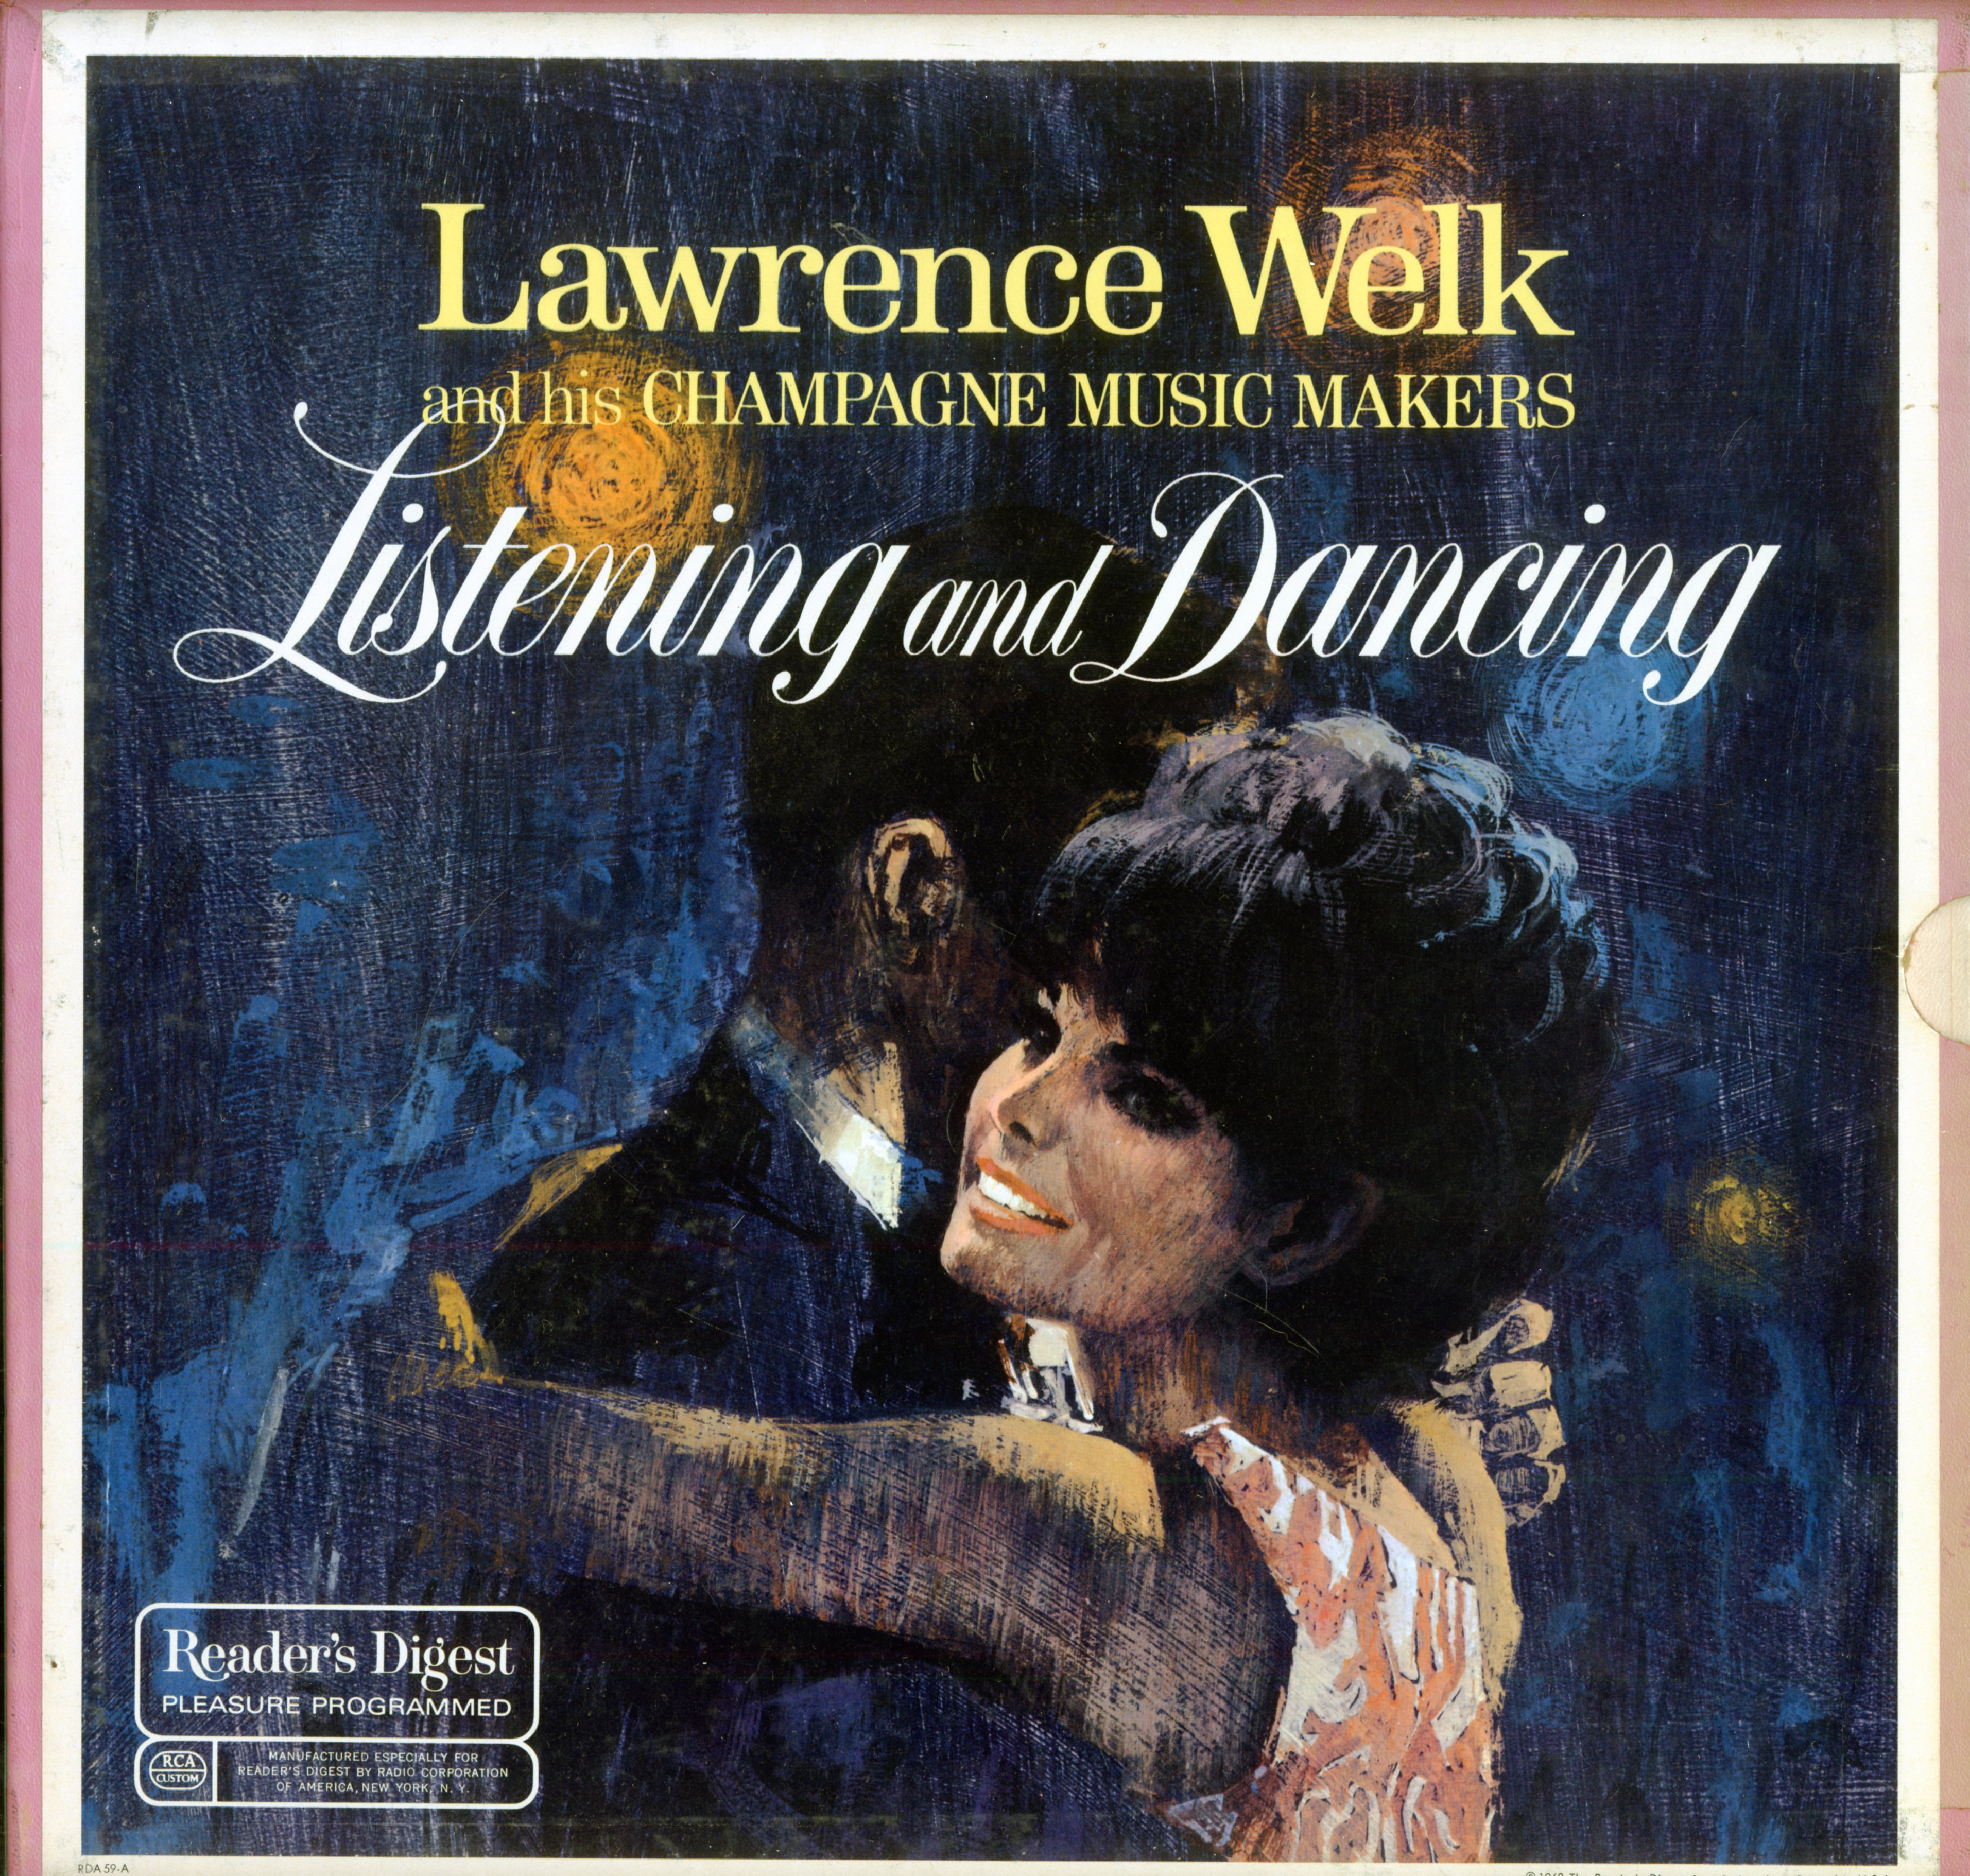 RDA59 - Welk, Lawrence - Listening and Dancing on CD